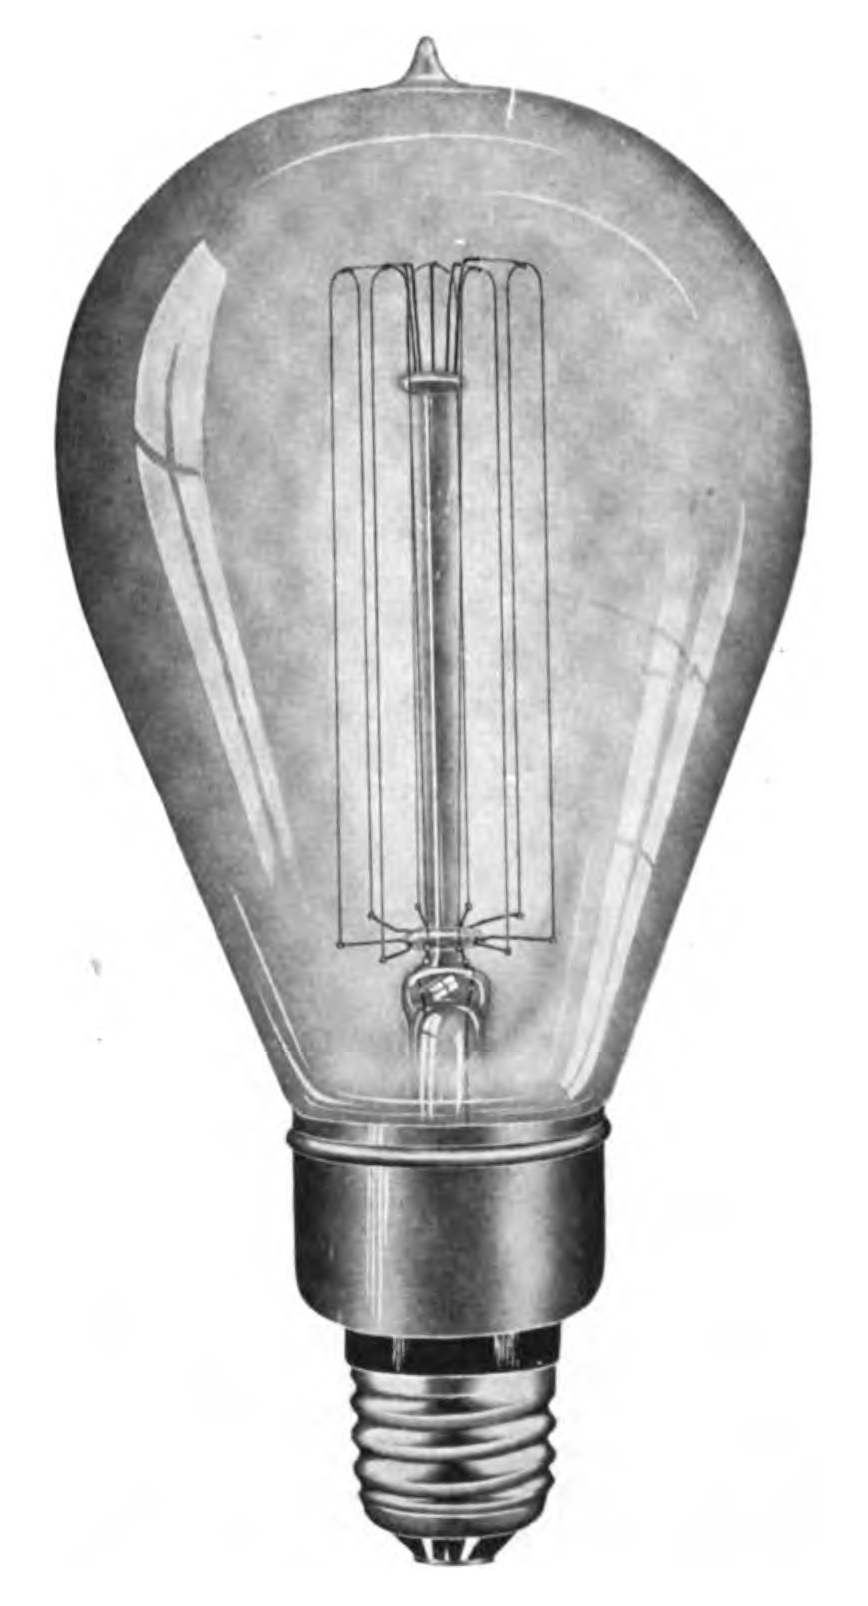 A Bulb Used For Cakes That Starts With A C